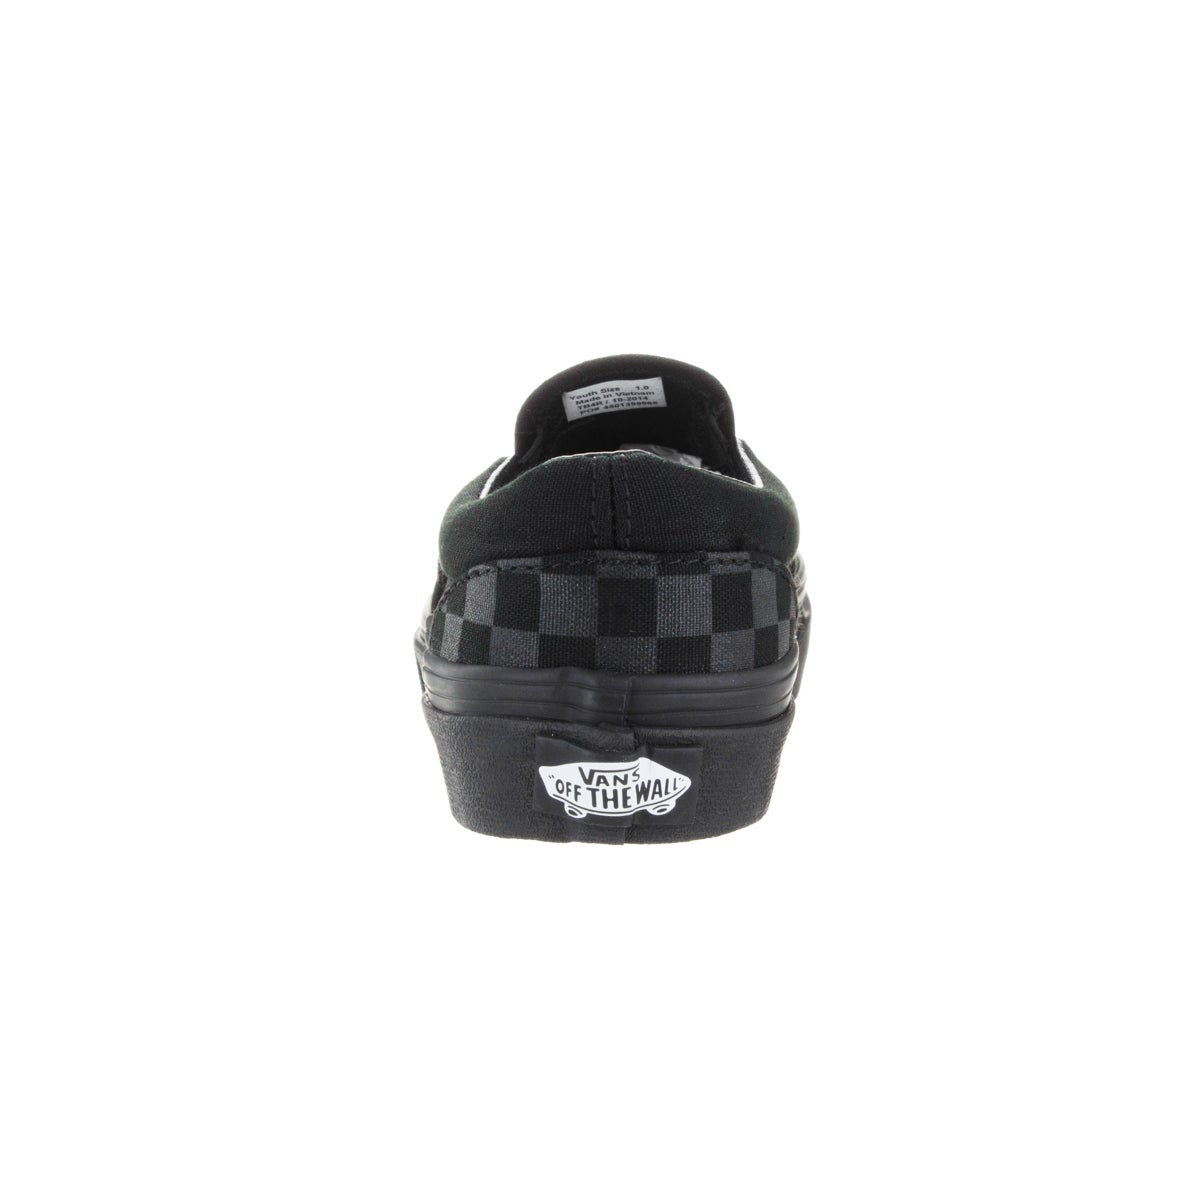 58f95ff4f82739 Shop Vans Kid s Classic Slip-On (Checkerboard) Mono Black Skate Shoe - Free  Shipping On Orders Over  45 - Overstock - 12321280